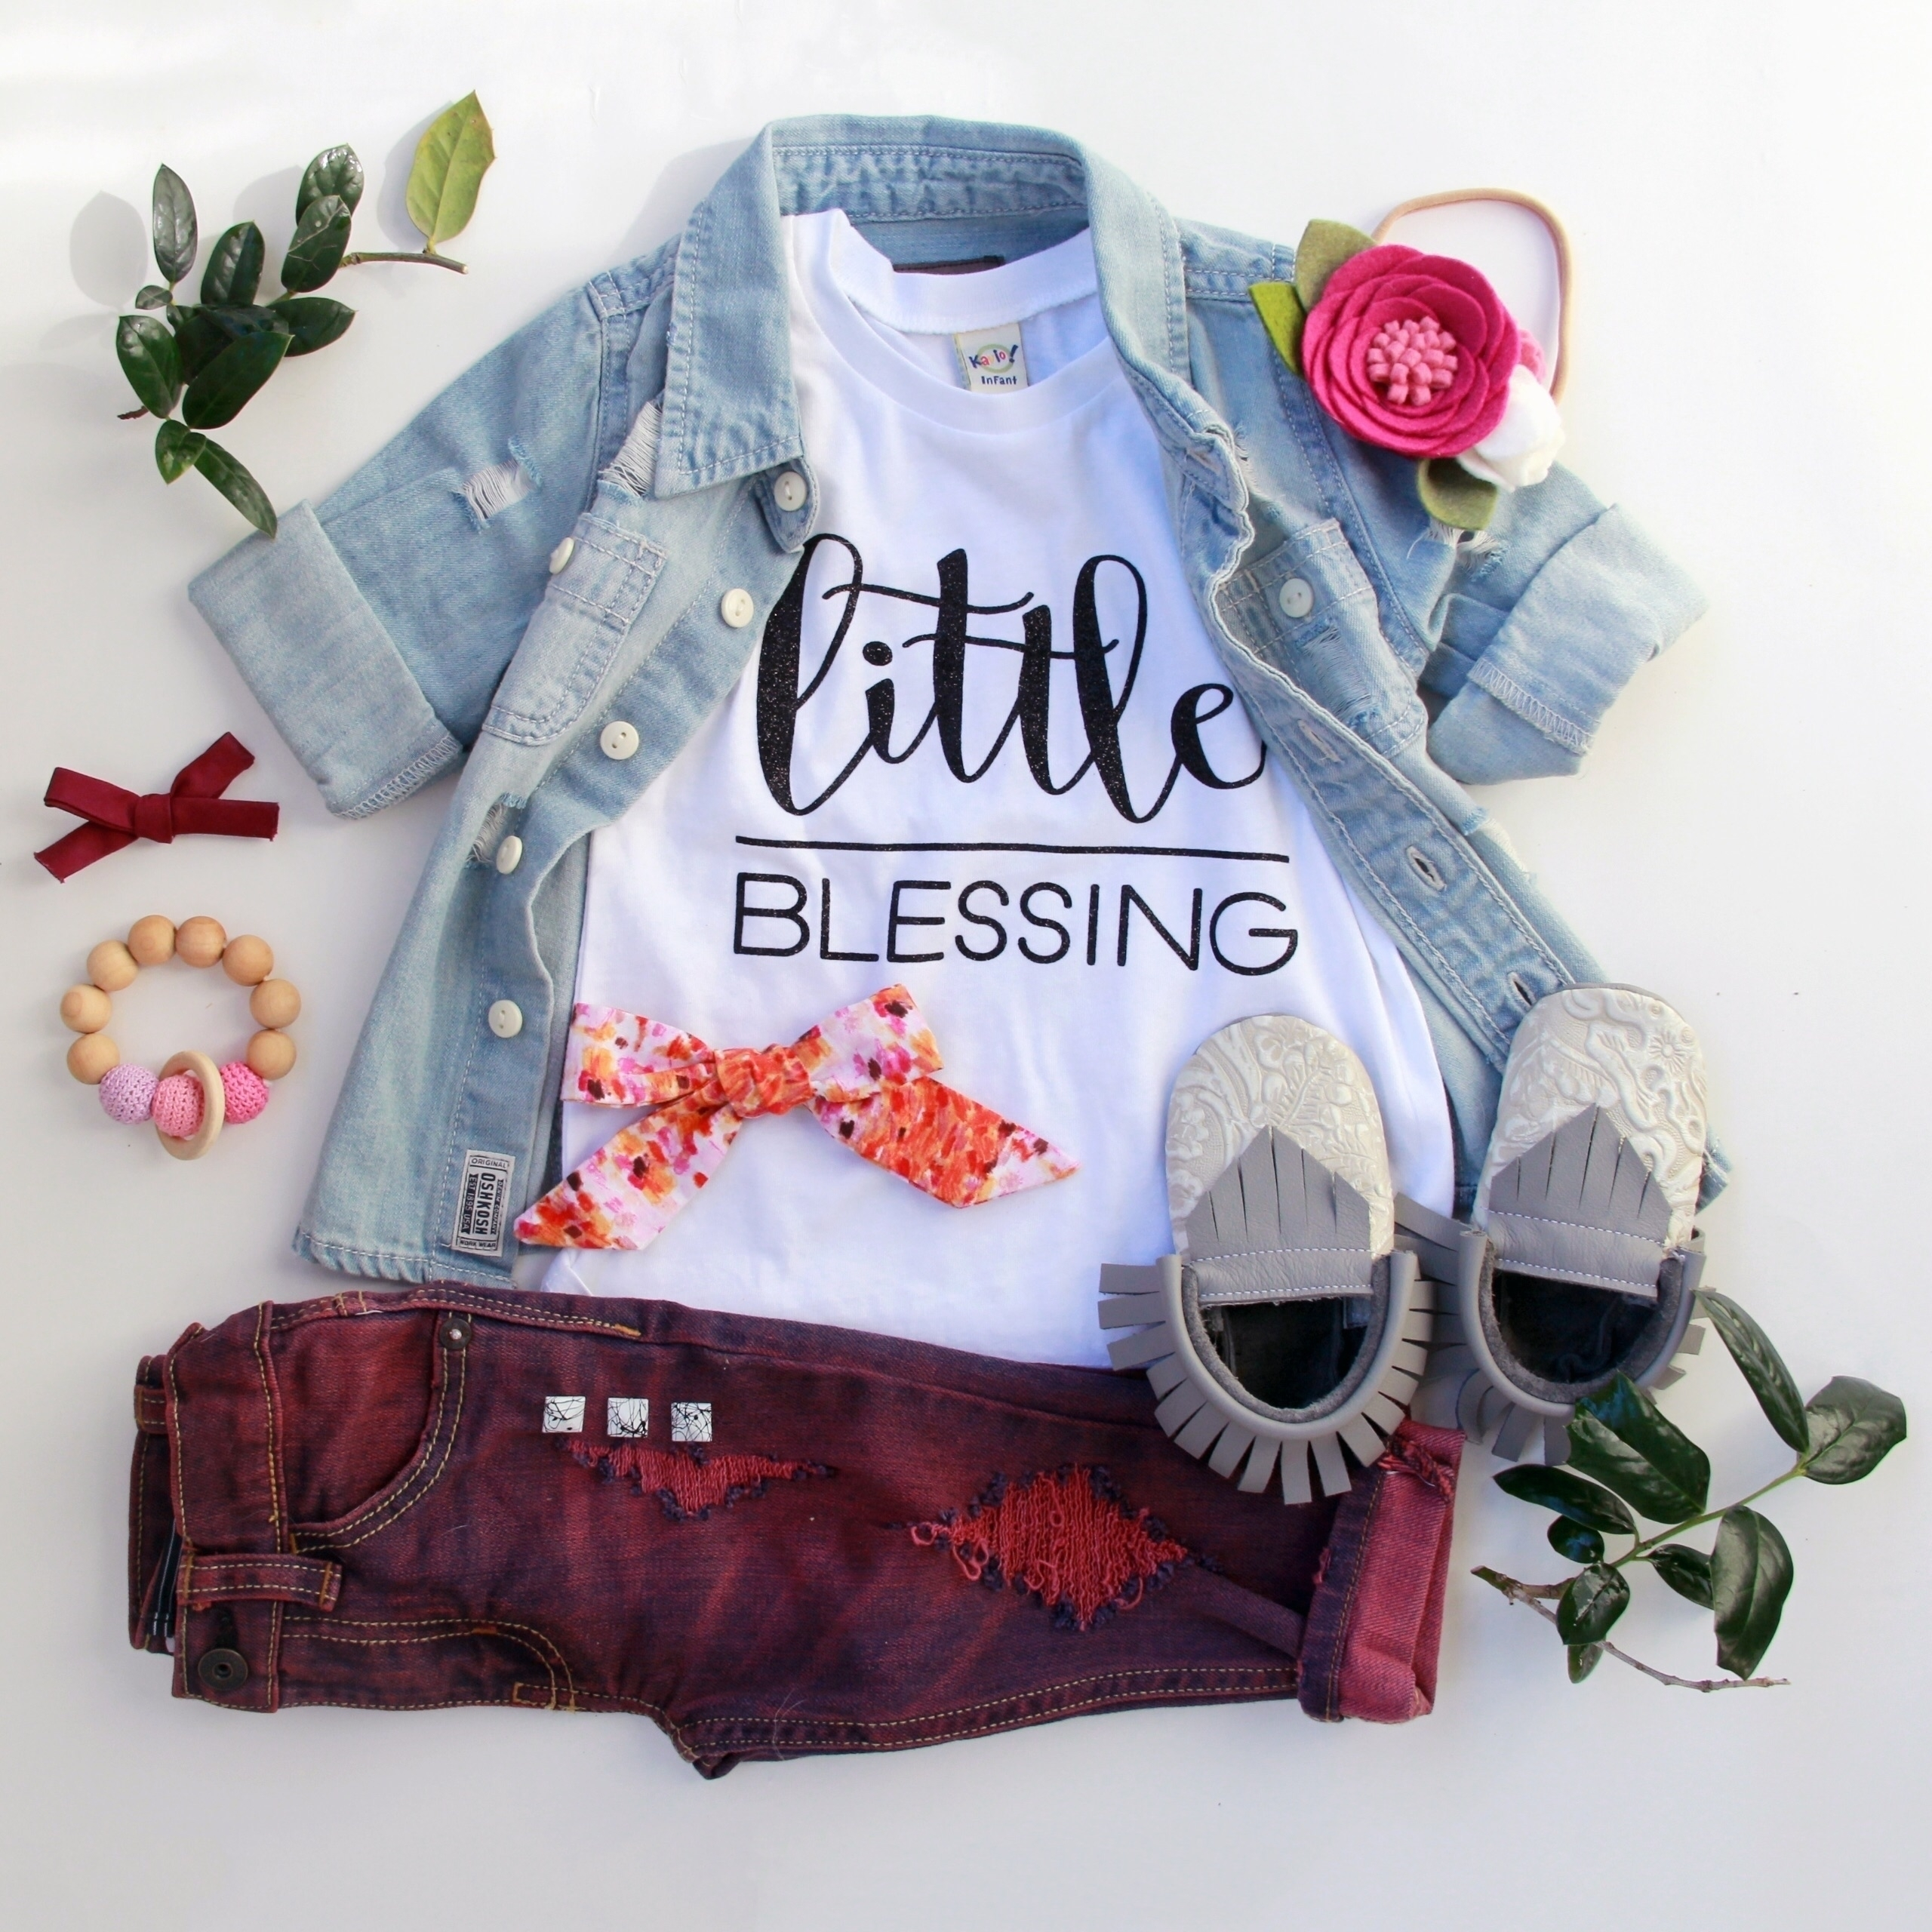 shirt started Blessing Collecti - littleblessingco | ello